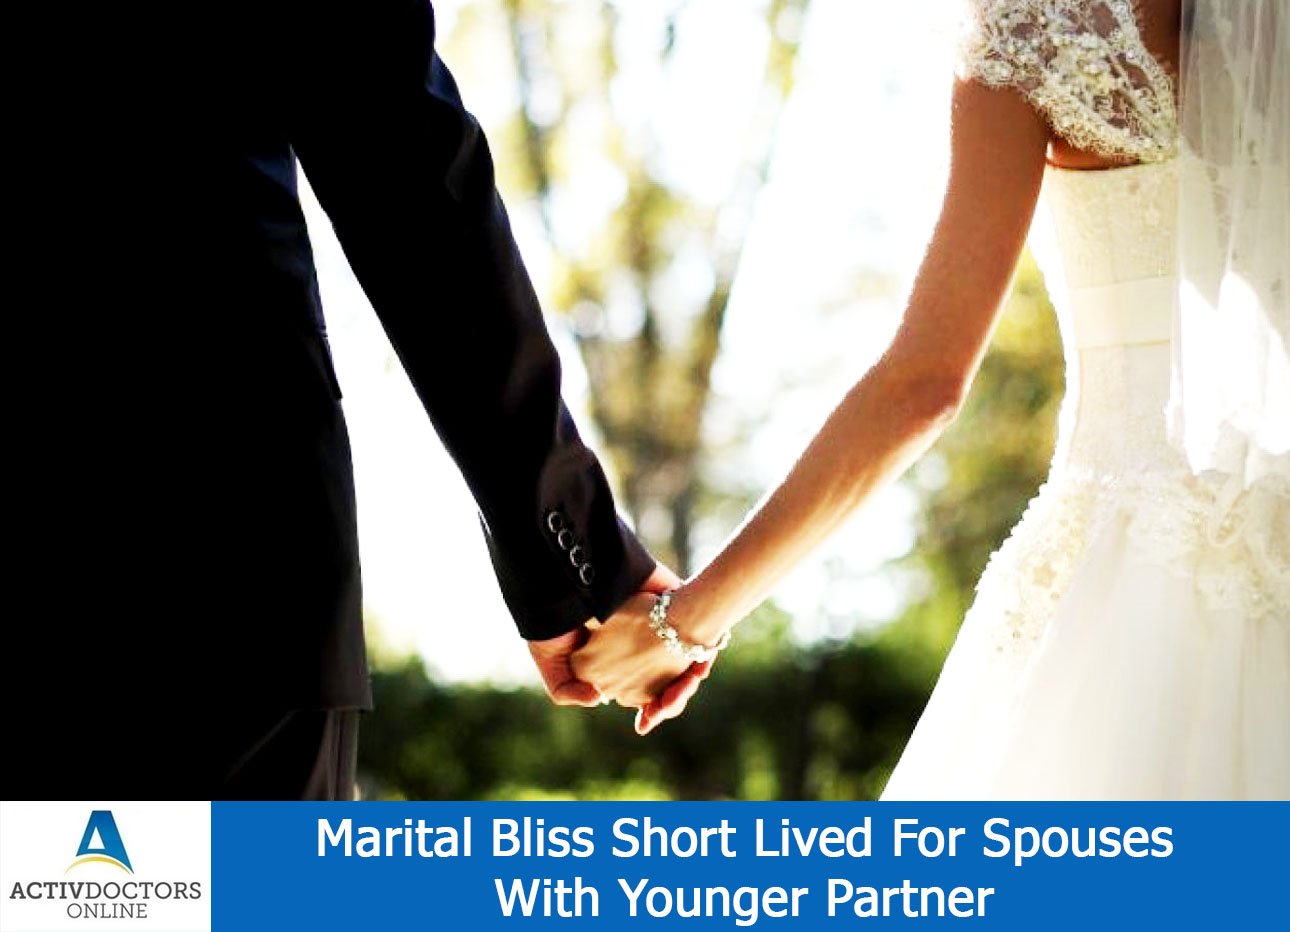 Marital Bliss Short Lived For Spouses With Younger Partner